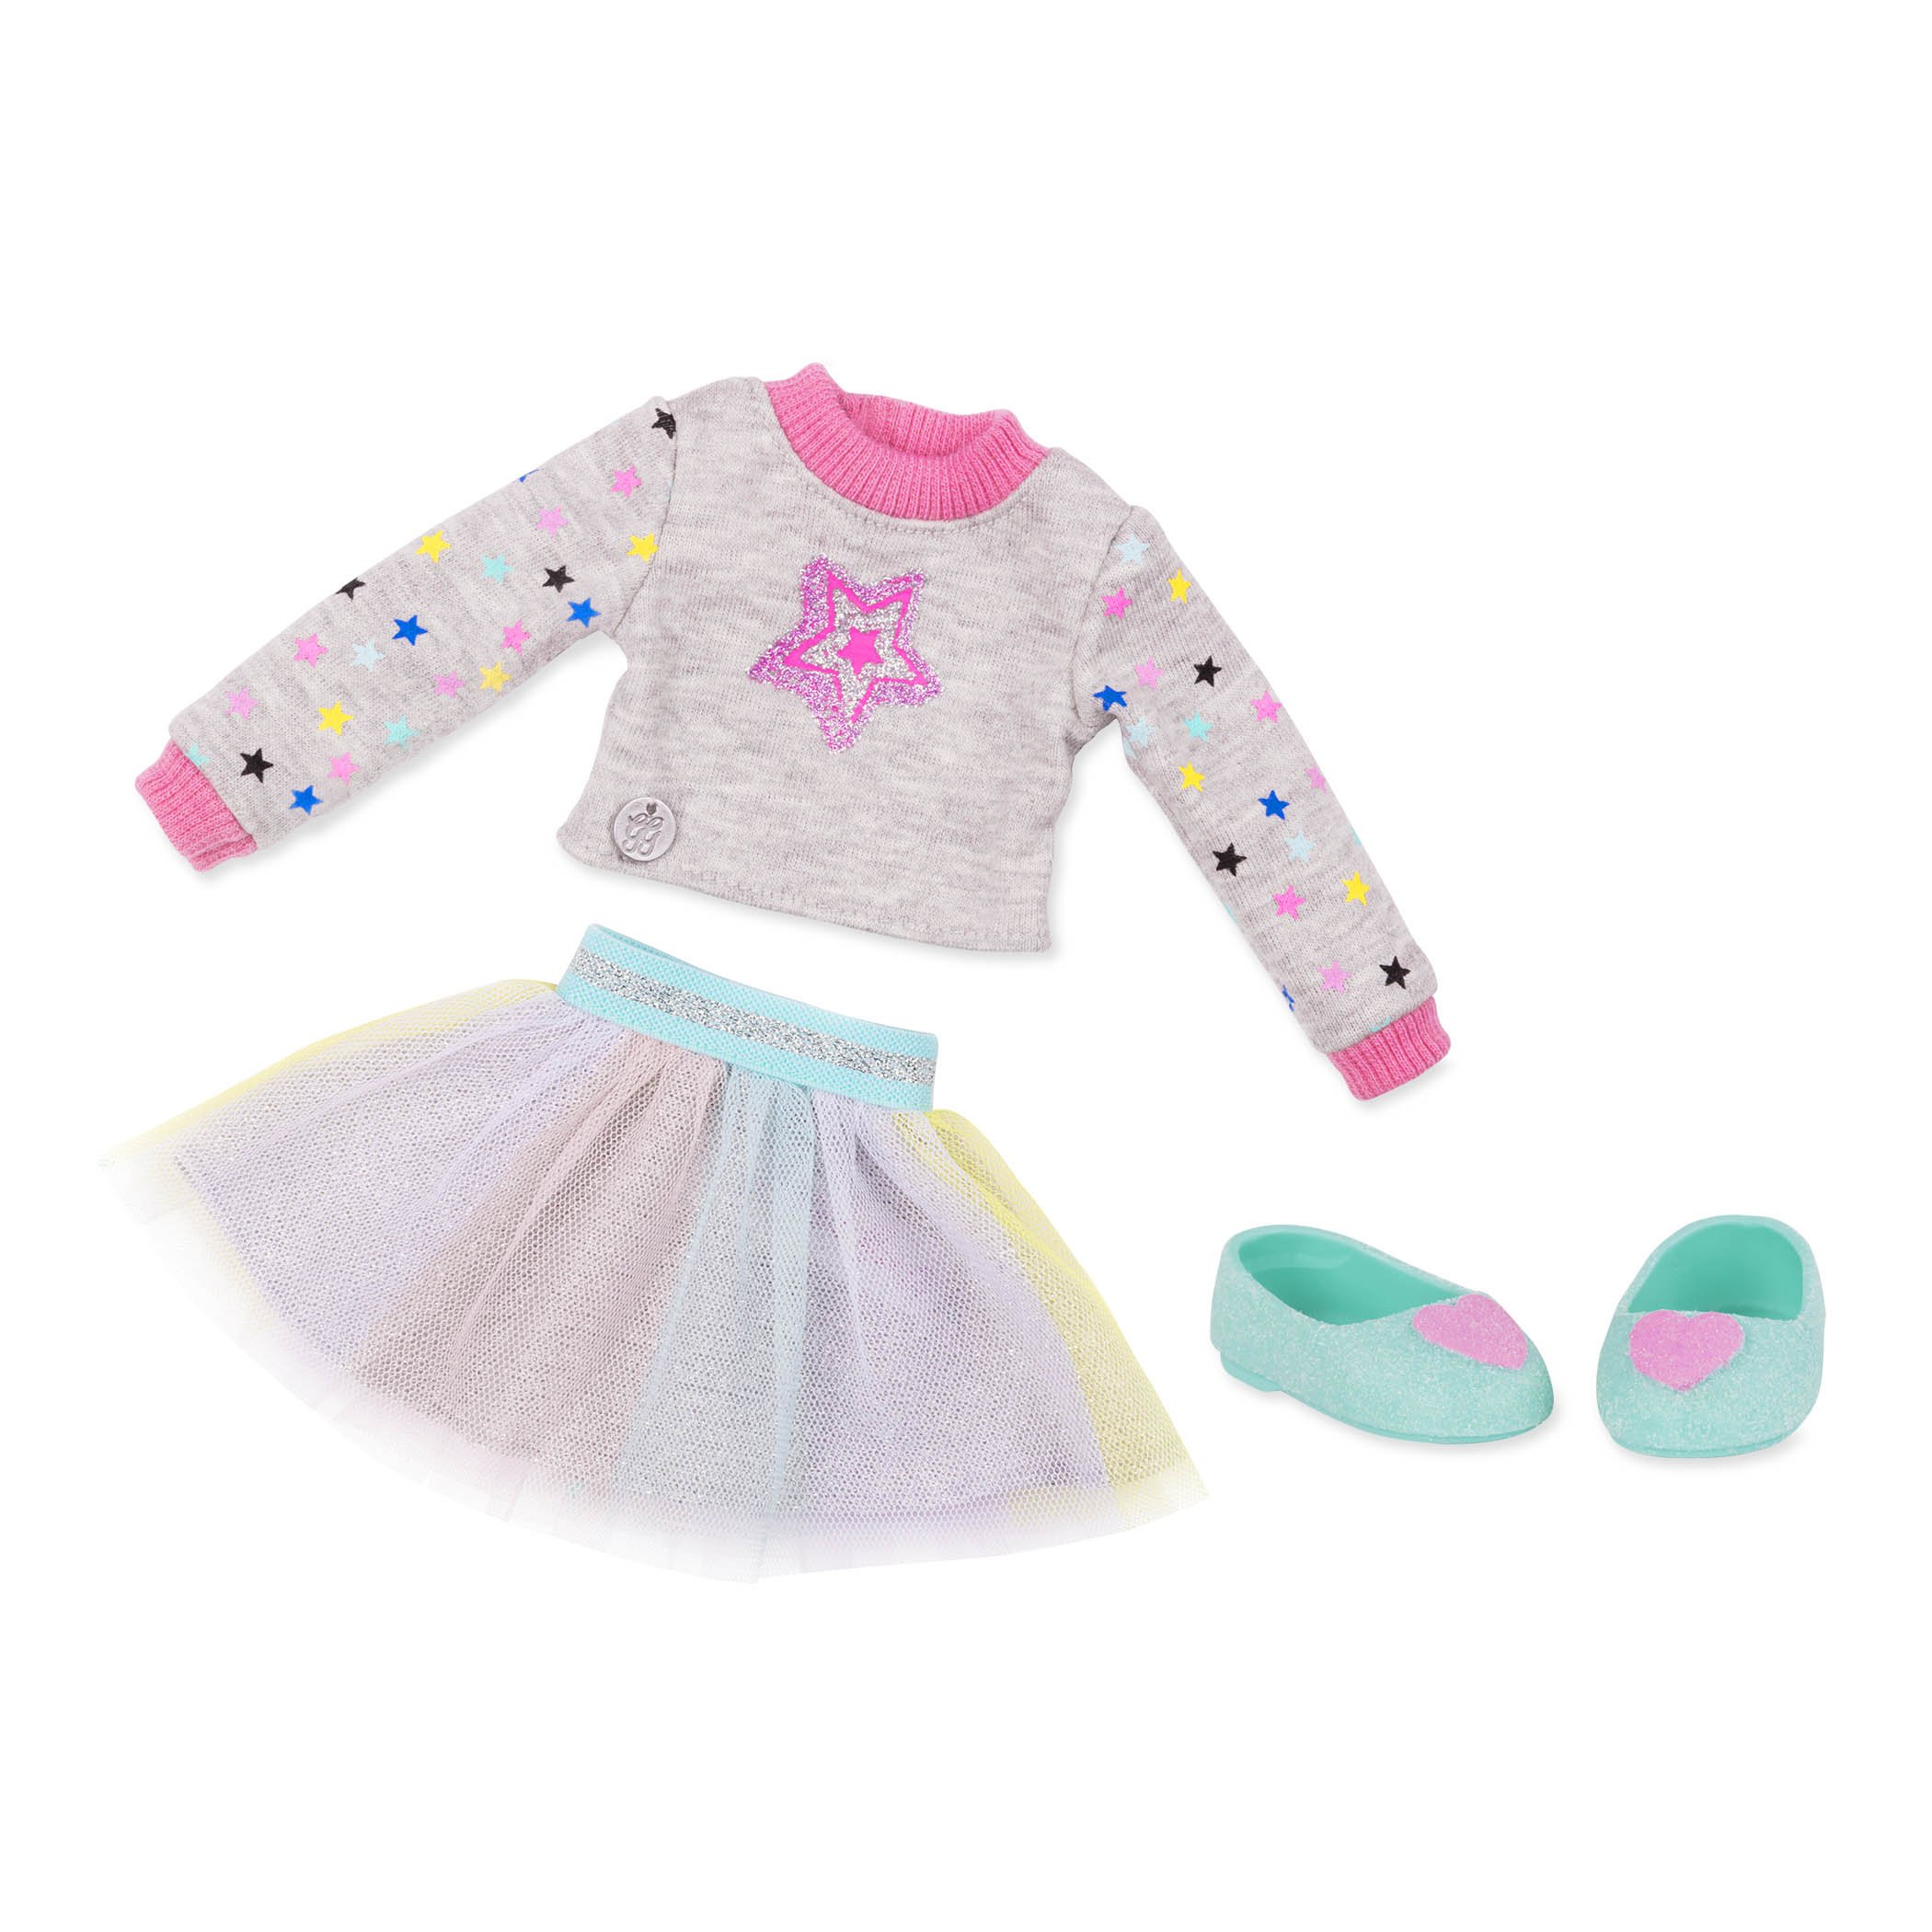 Glitter Girls by Battat - Shine Bright Outfit -14